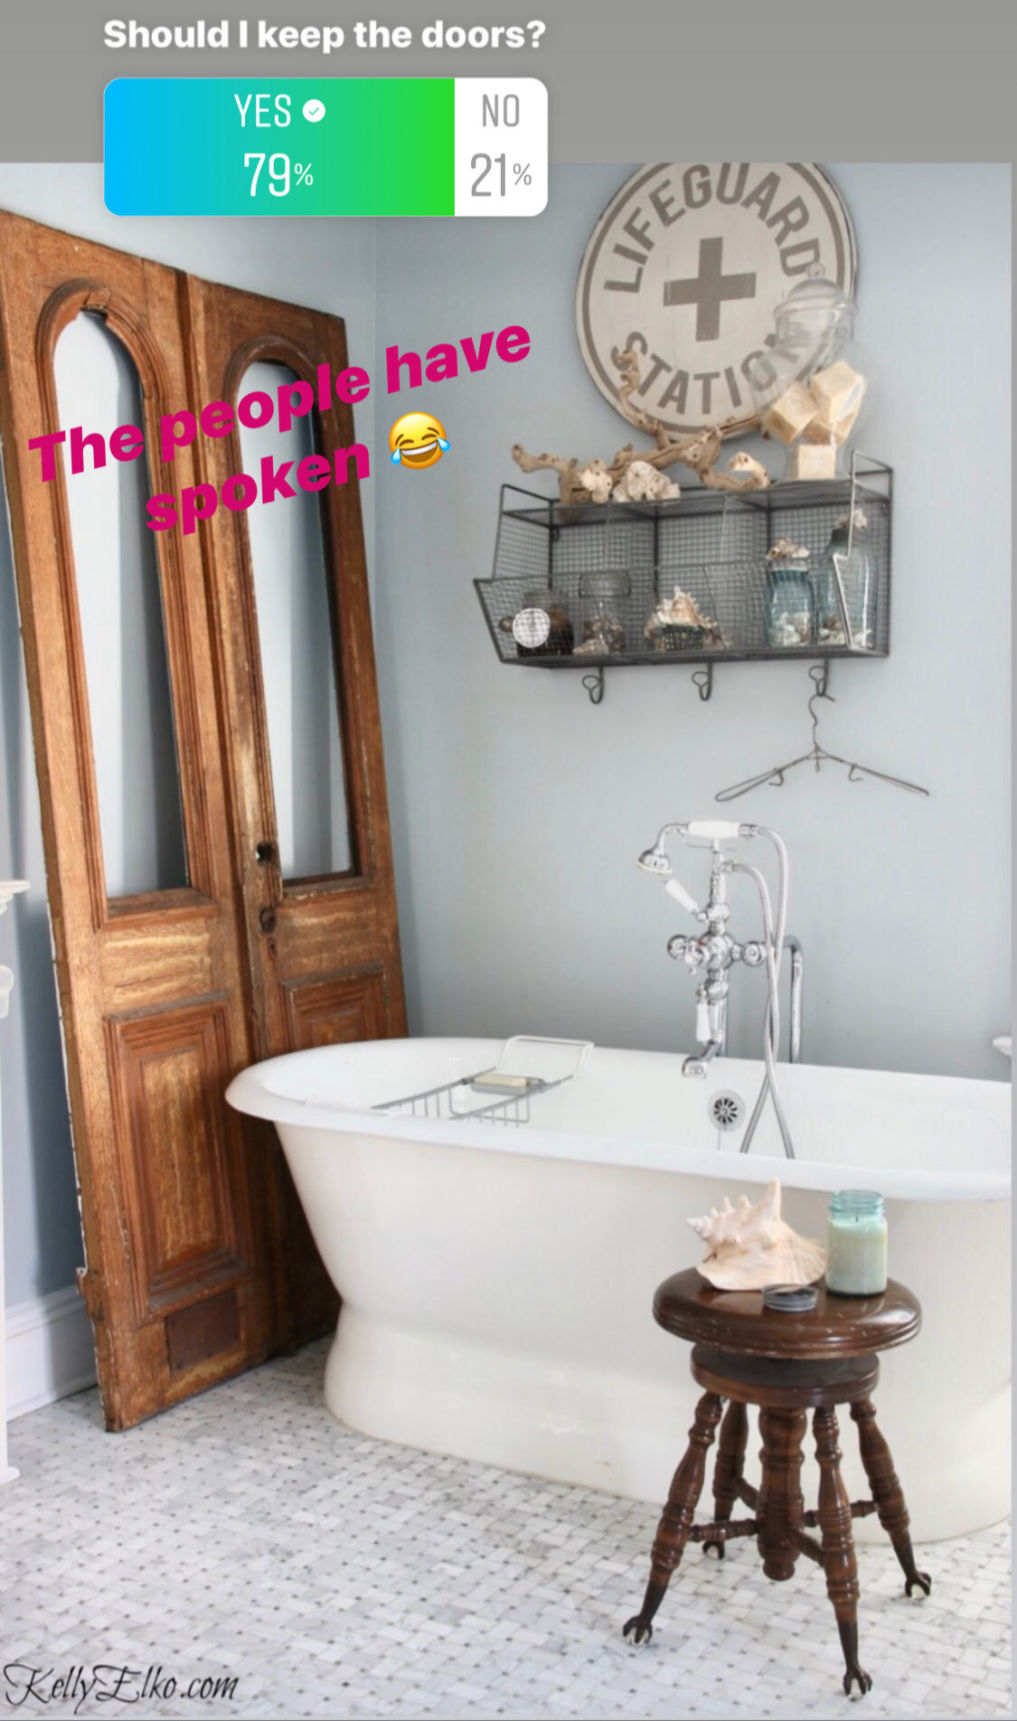 I asked and you answered! Should I keep these antique doors in my bathroom? kellyelko.com #bathroom #masterbathroom #vintagebathroom #antiquedoors #vintagedecor #marbletile #marblebathroom #freestandingtub #coastalbathroom